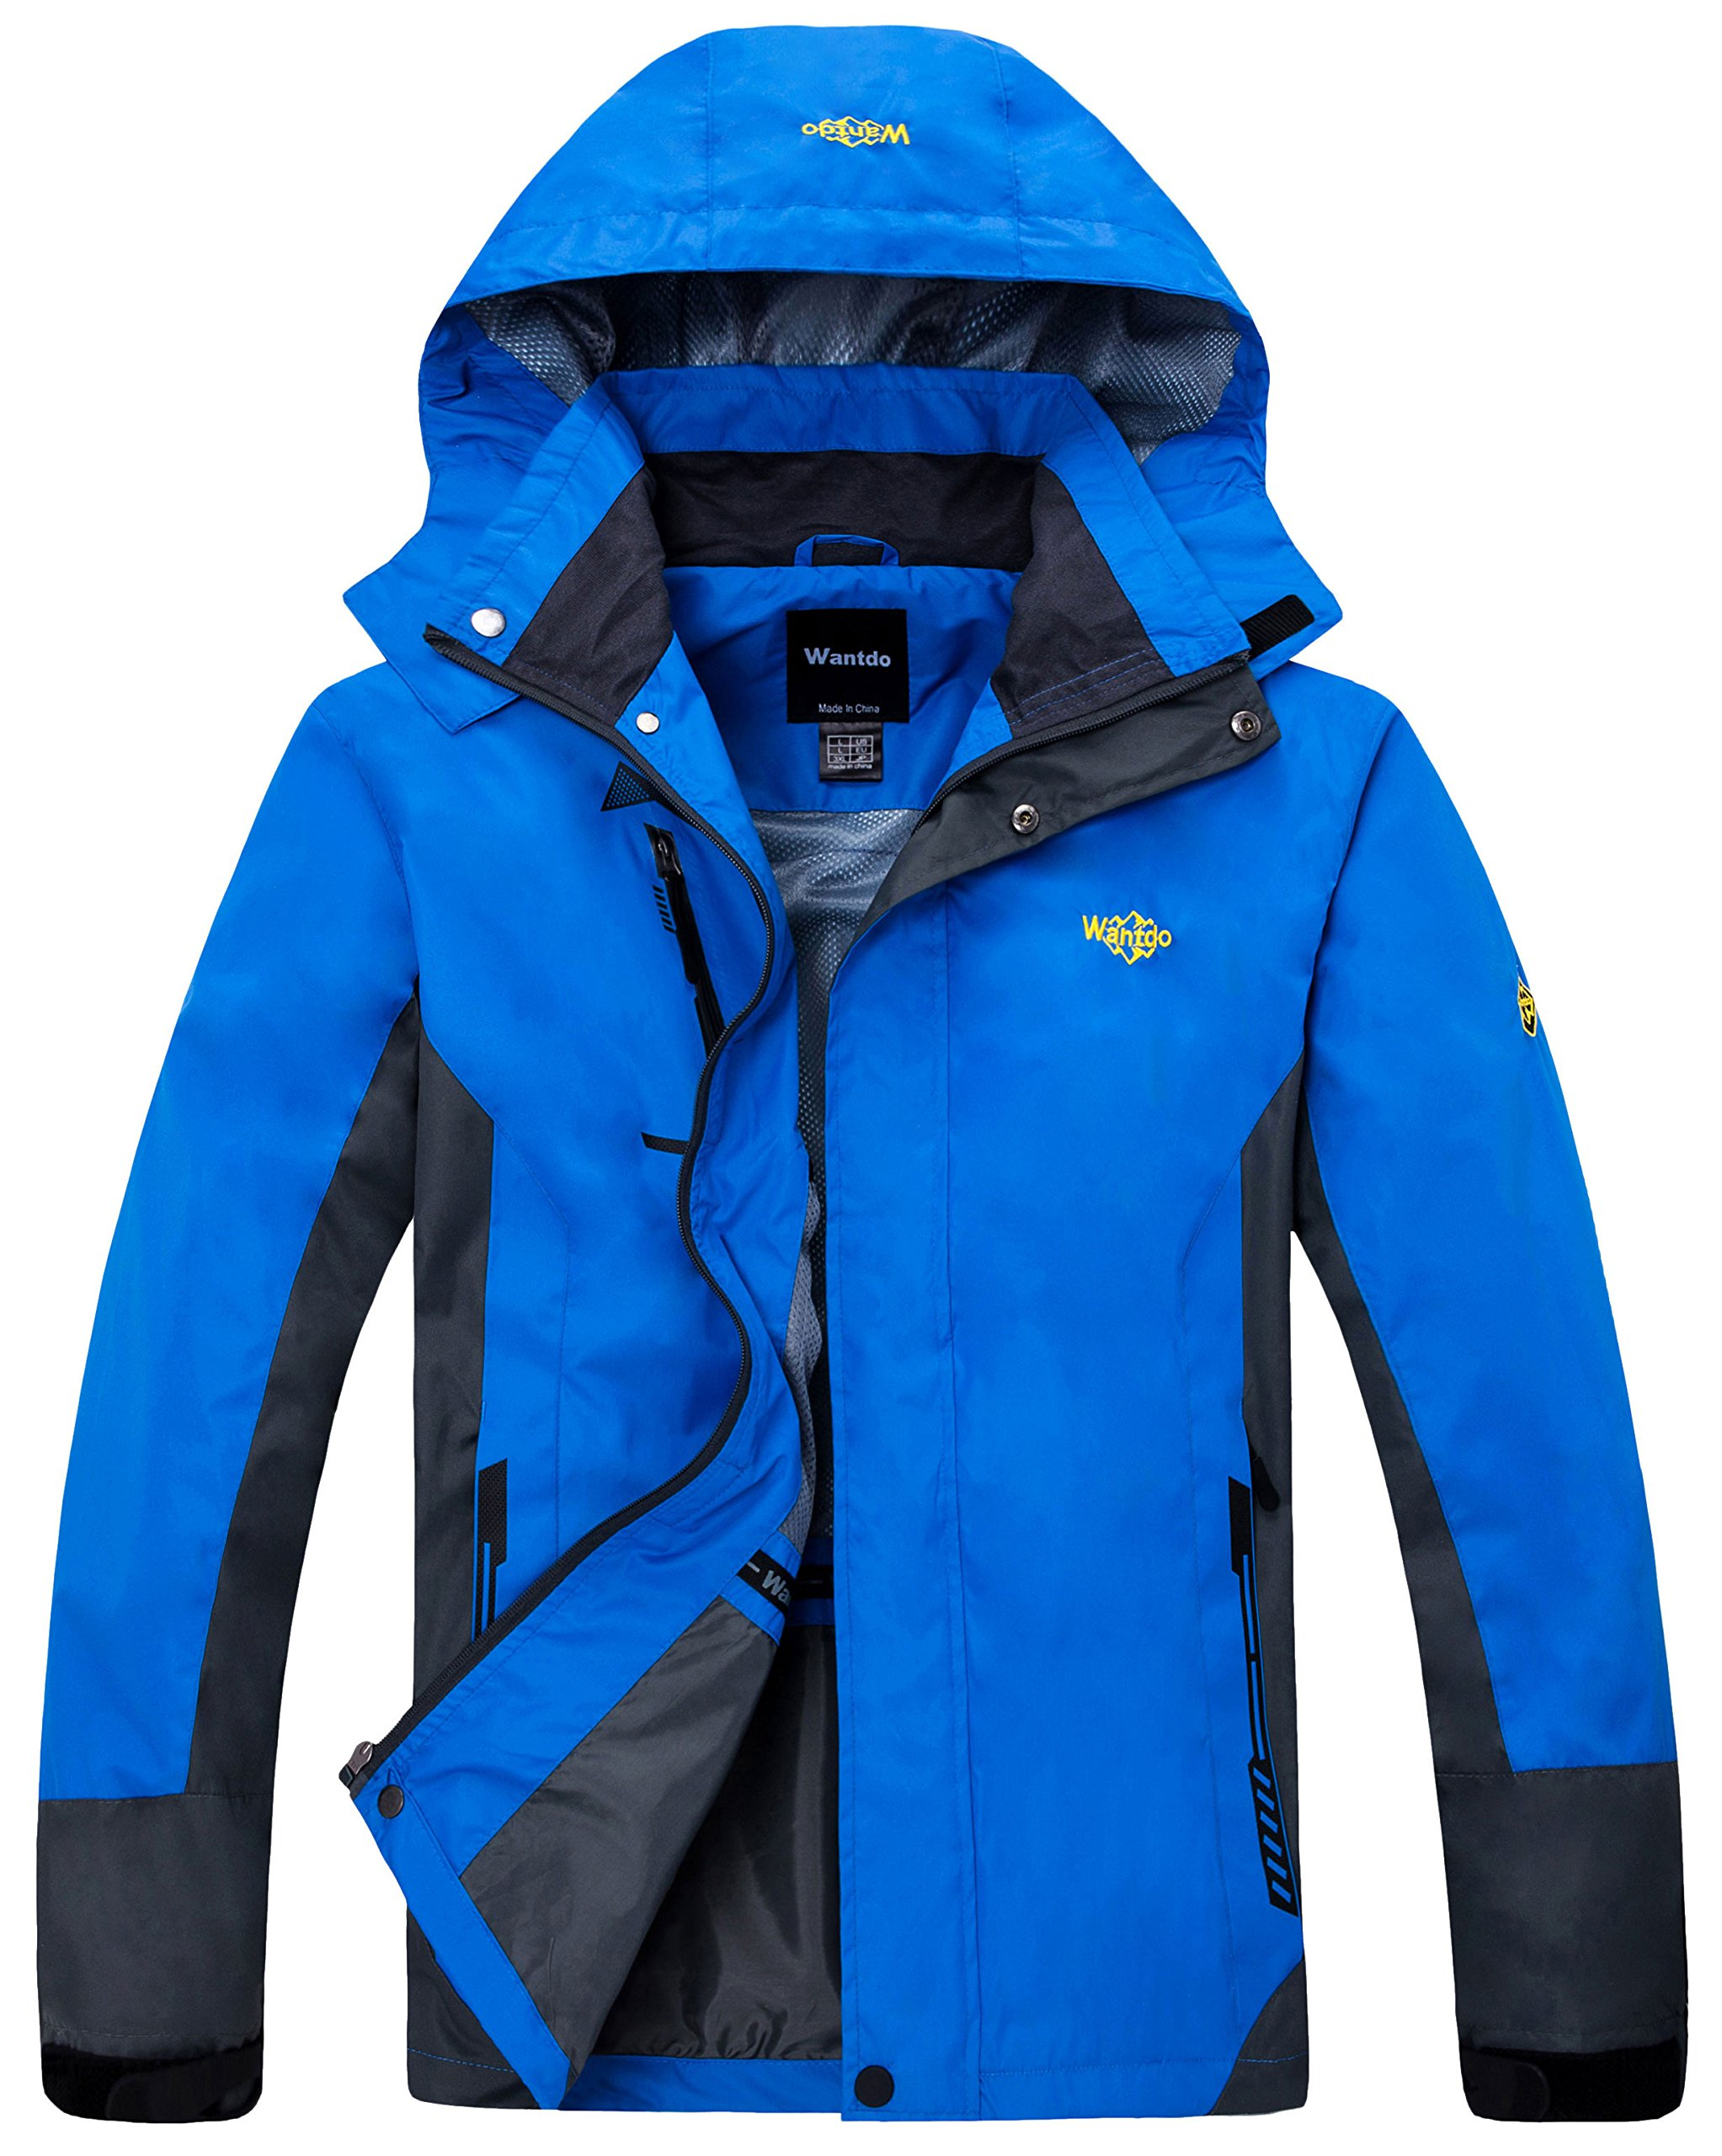 Wantdo Men's Breathable Sports Clothing Removable Polyester Jacket Blue US L by Wantdo